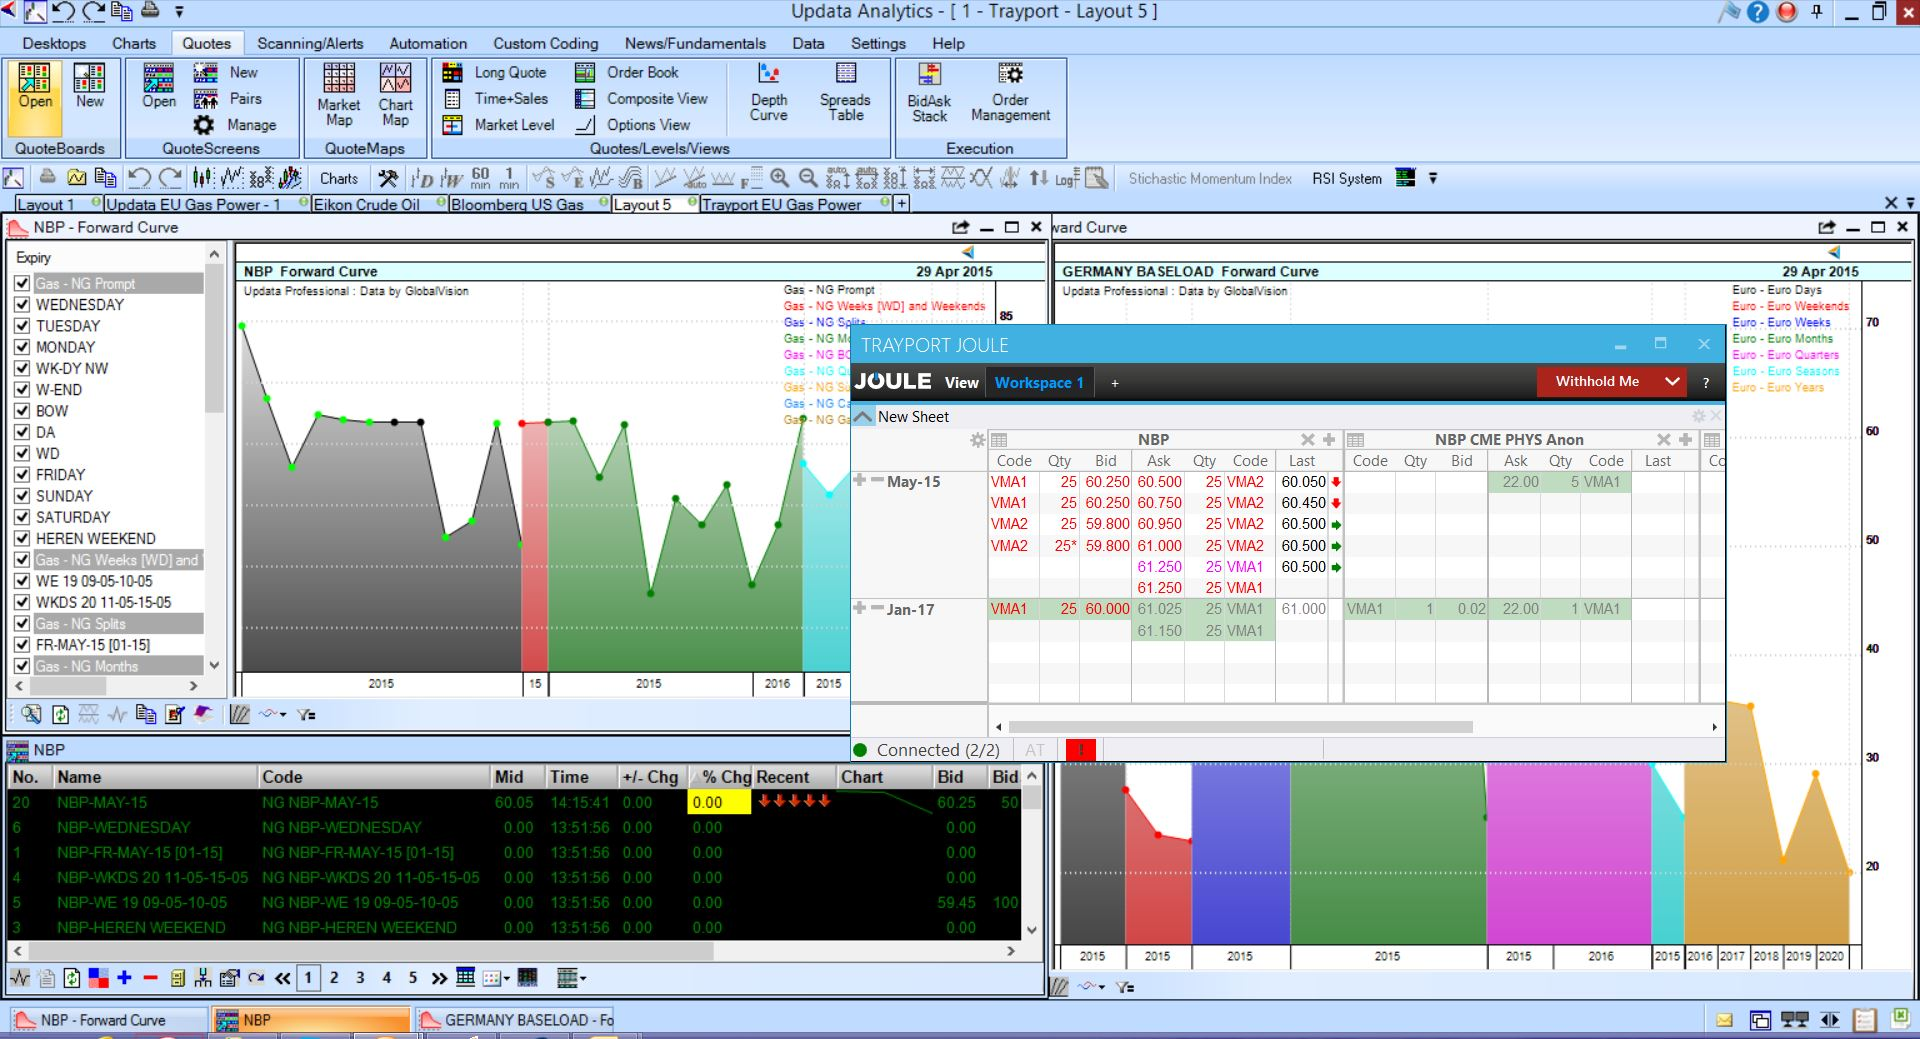 See how energy traders chart data from the Trayport trading platform with Updata